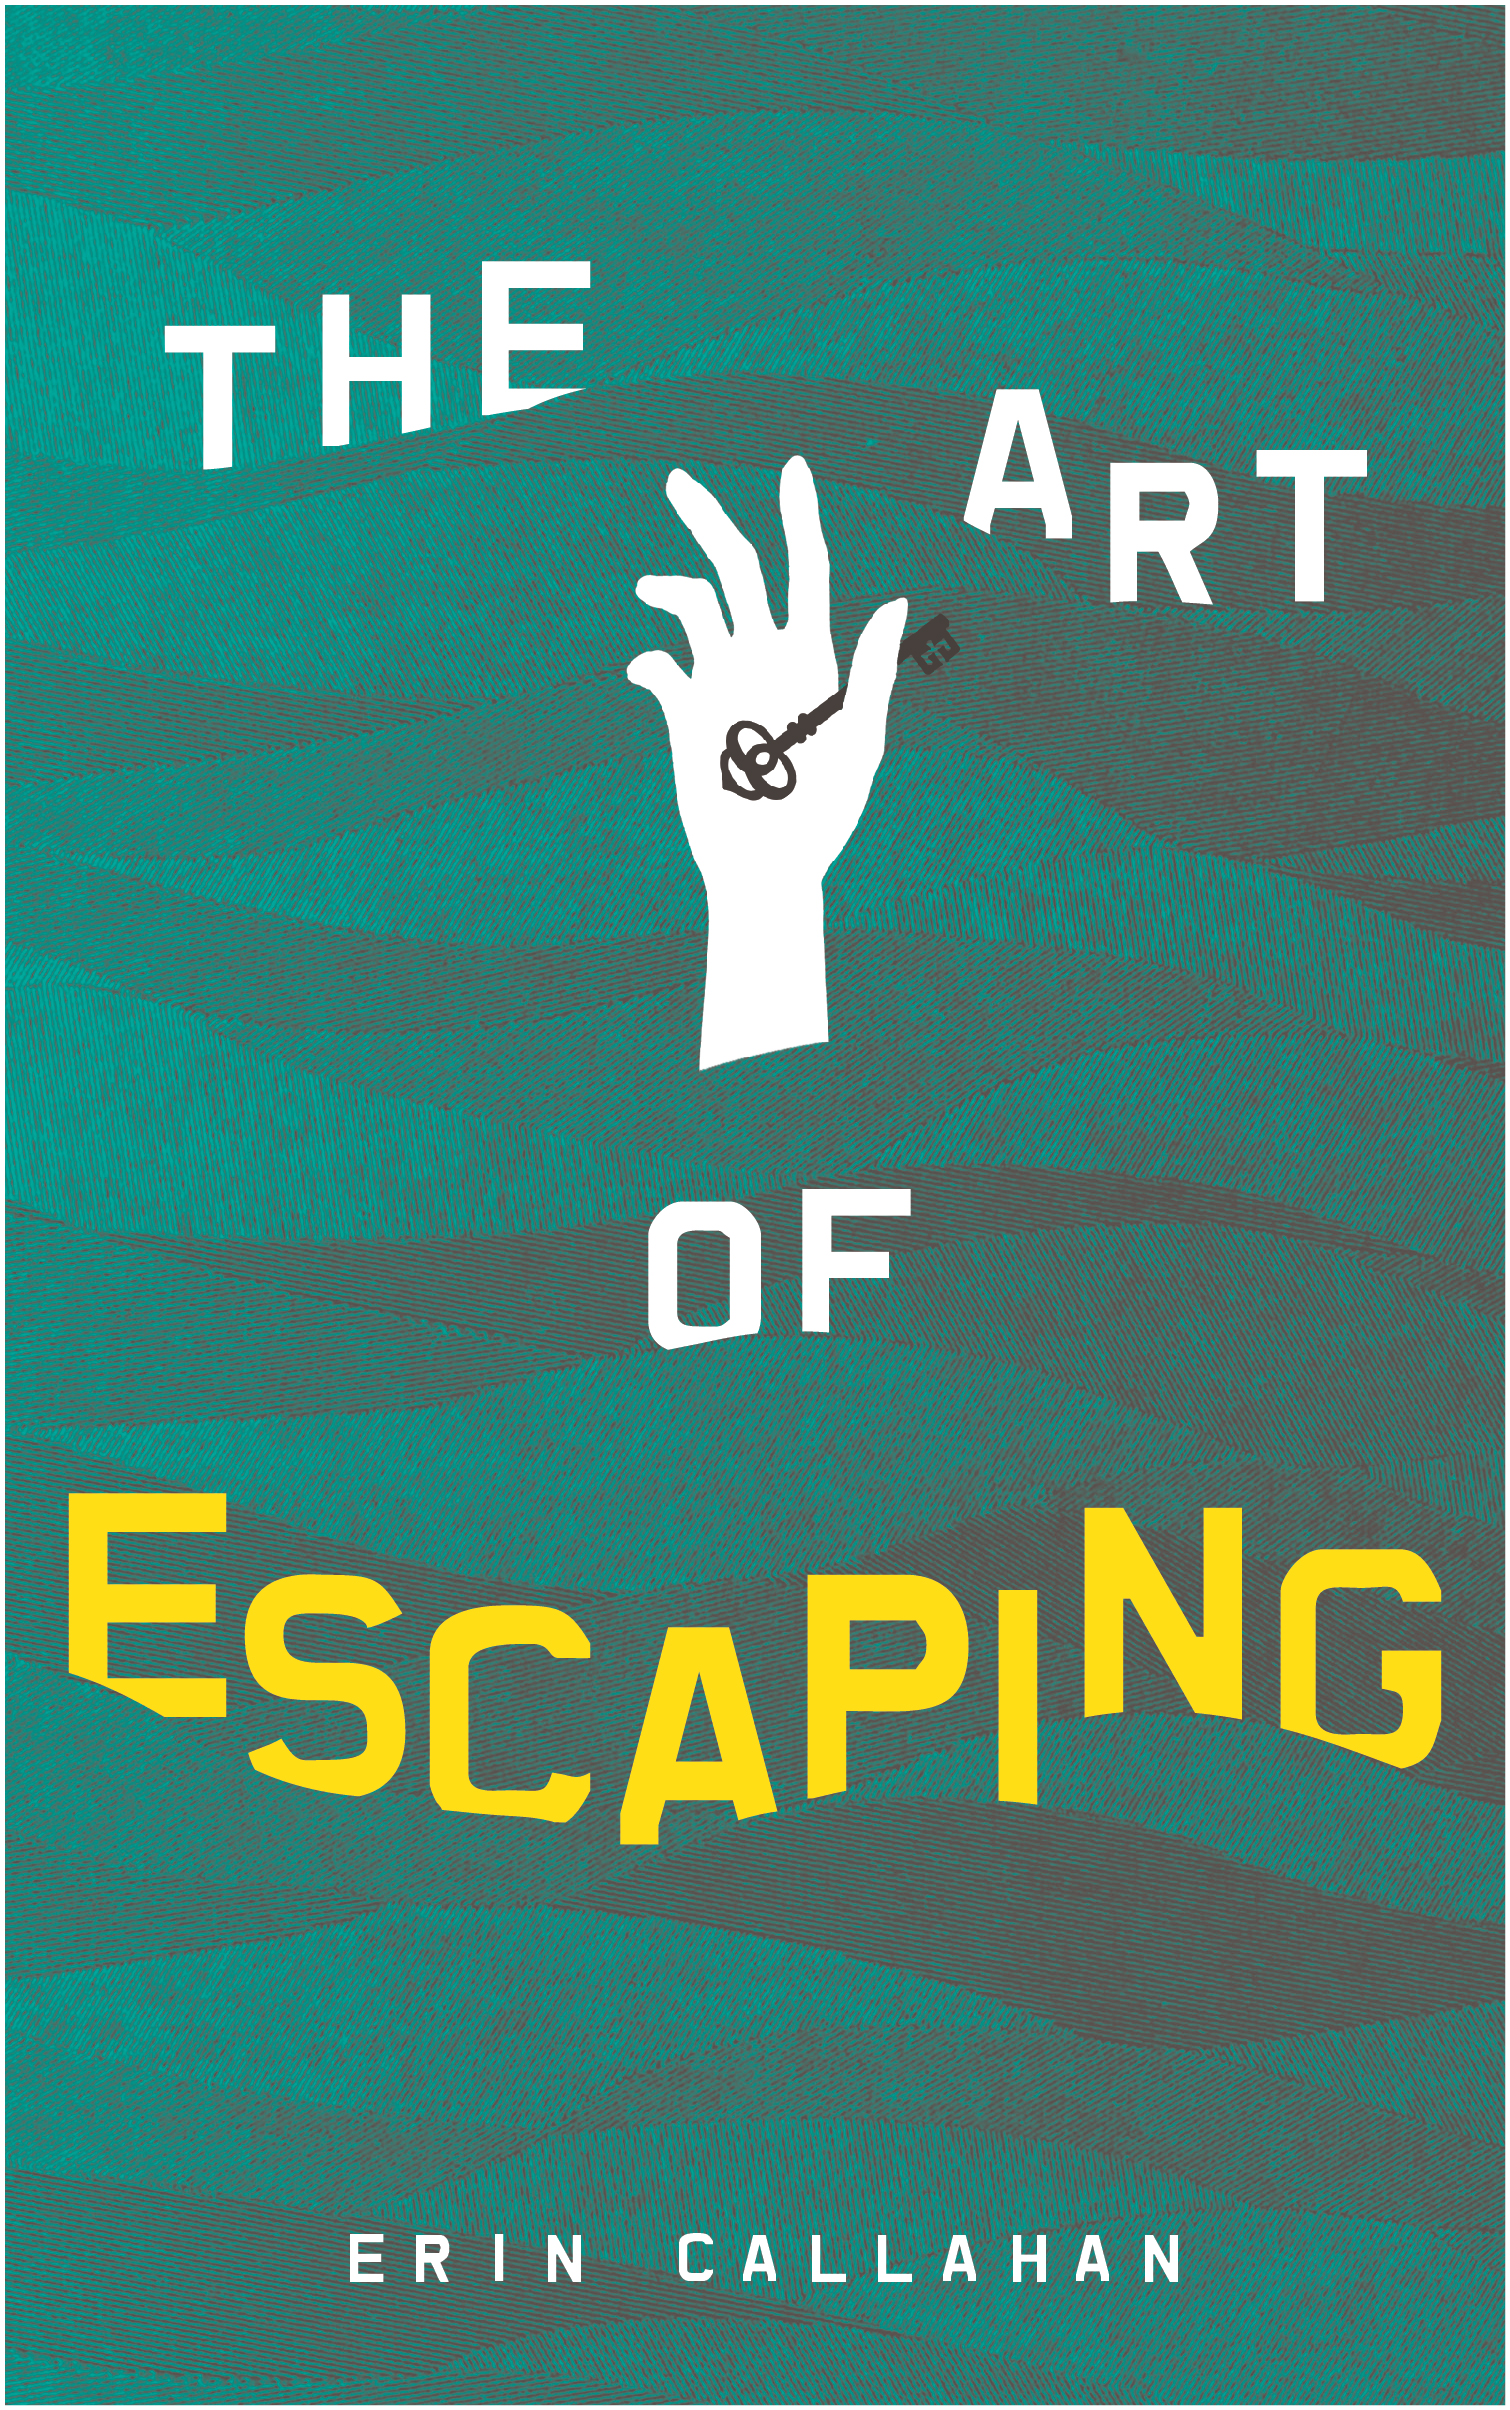 Art of Escaping1.jpg